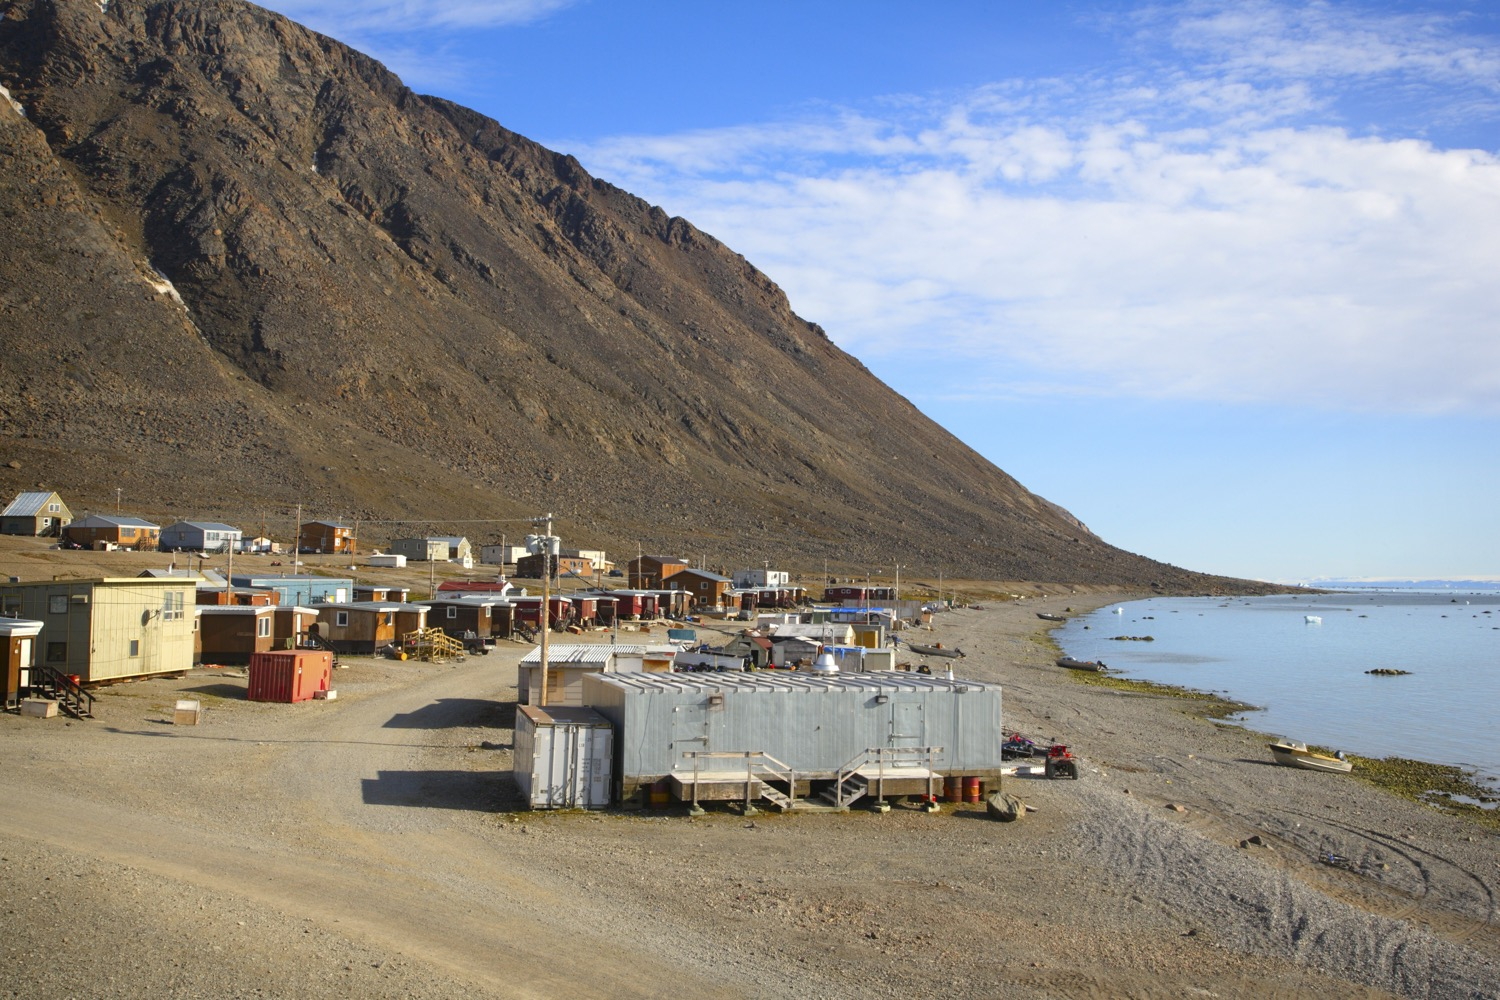 Small town next to the mountains and lake in Nunavut.